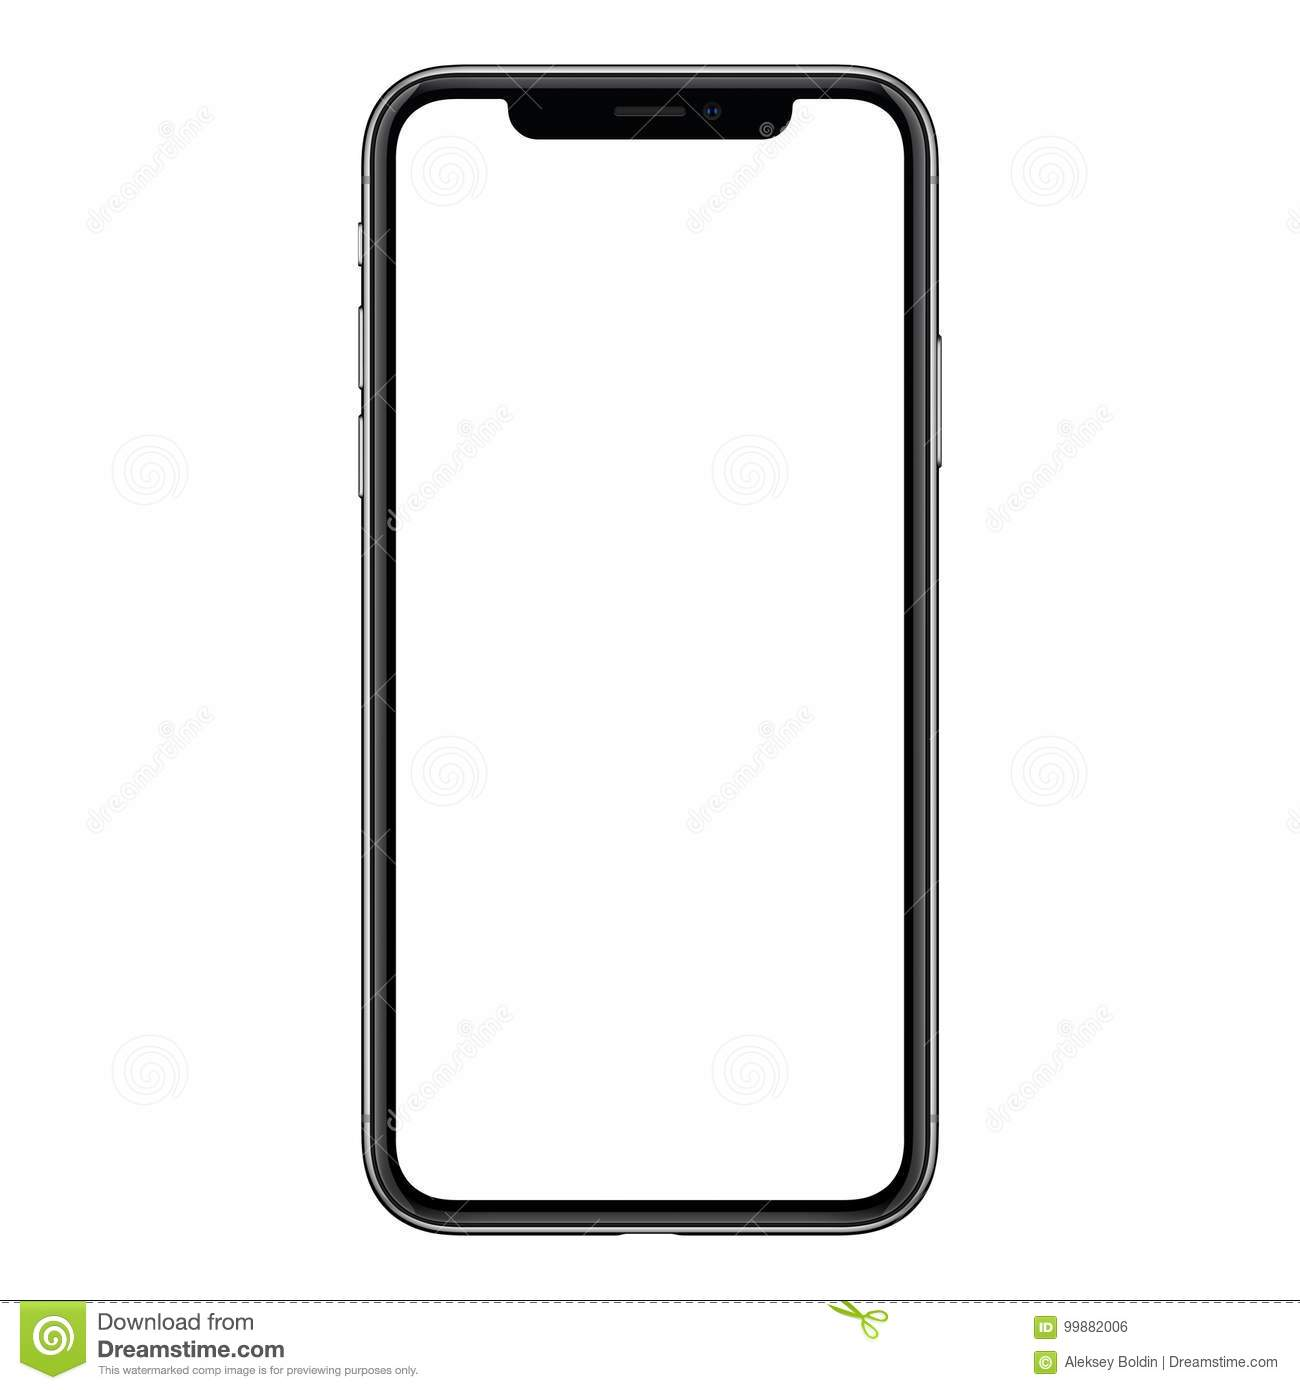 iPhone X. New modern frameless smartphone mockup with white screen isolated on white background